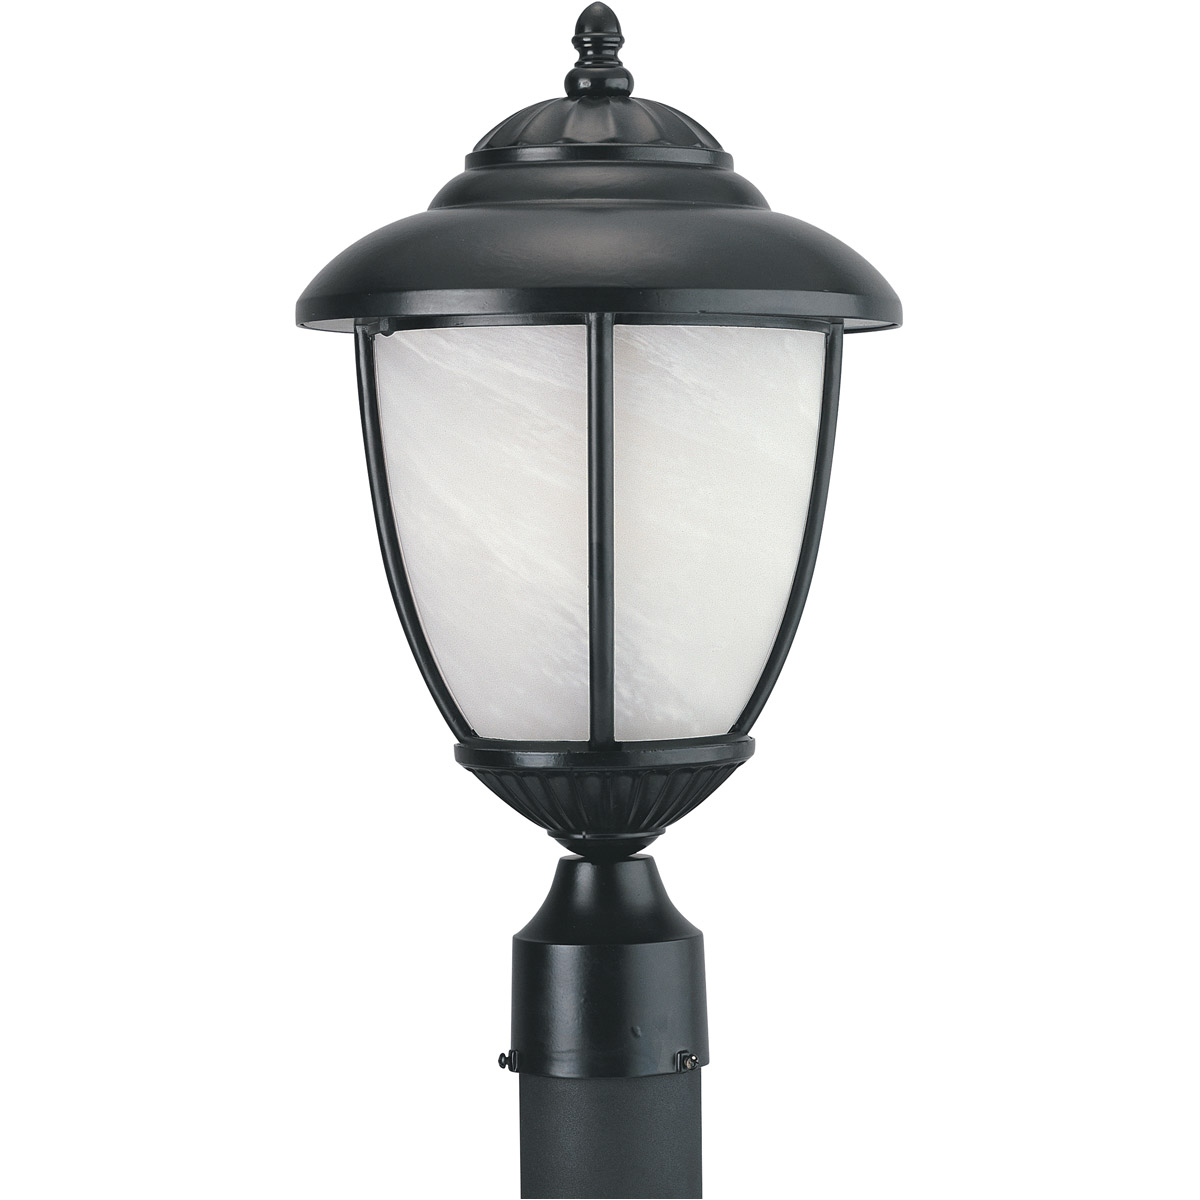 Sea Gull Lighting Yorktown 1 Light Outdoor Post Lantern in Black 82950PBL-12 photo